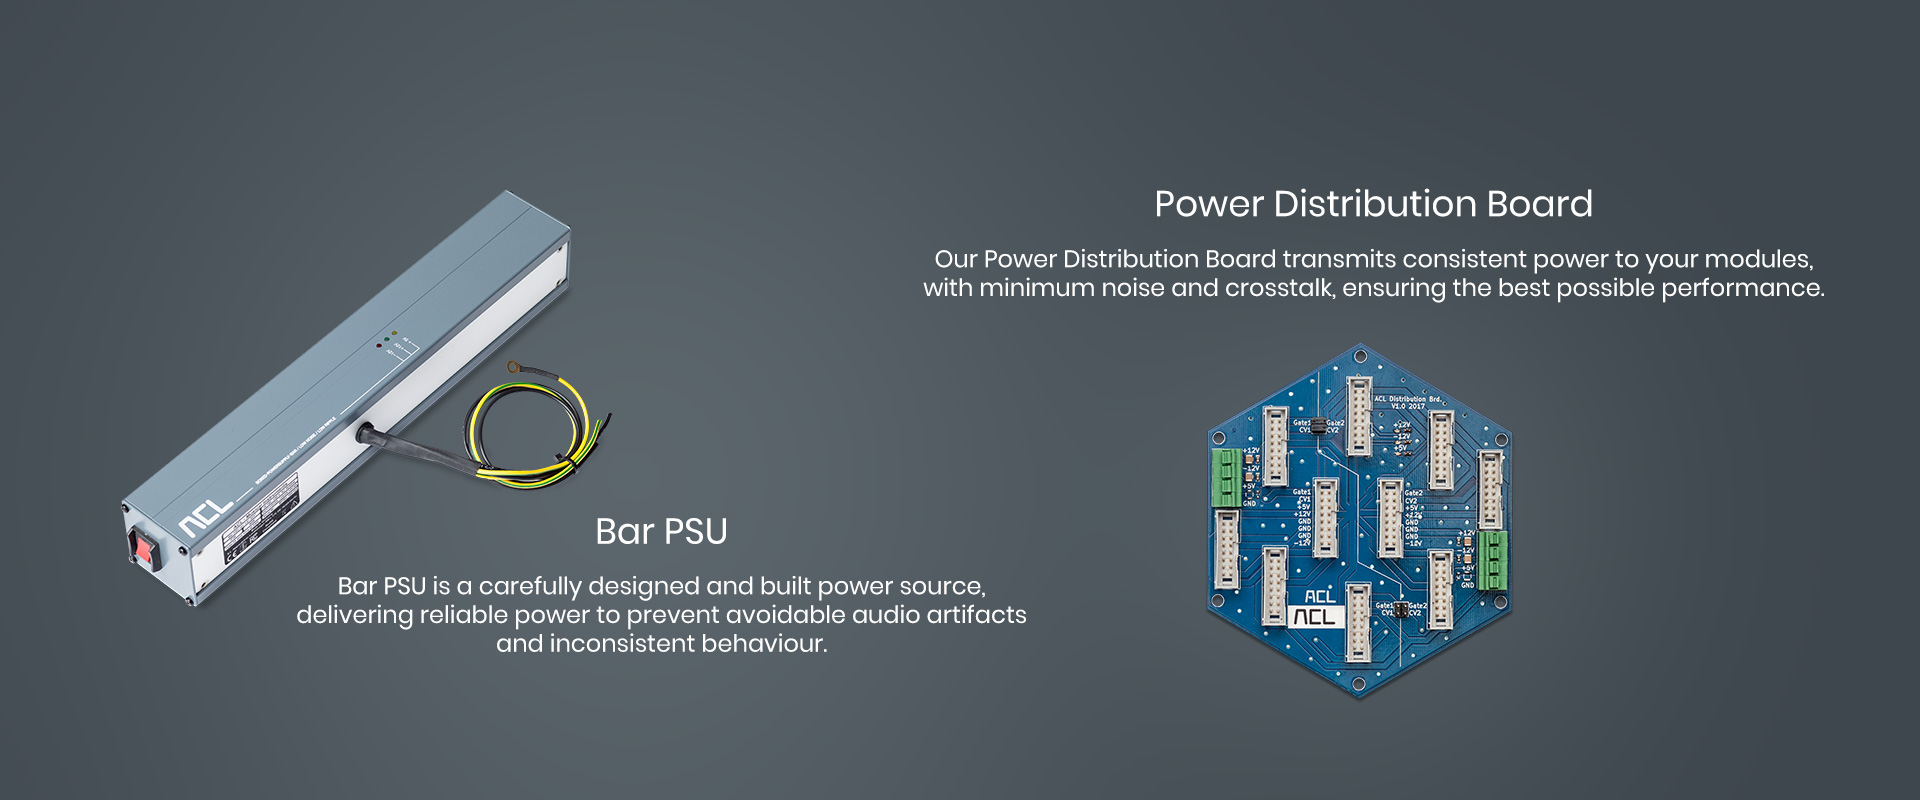 Bar PSU and Distribution Board